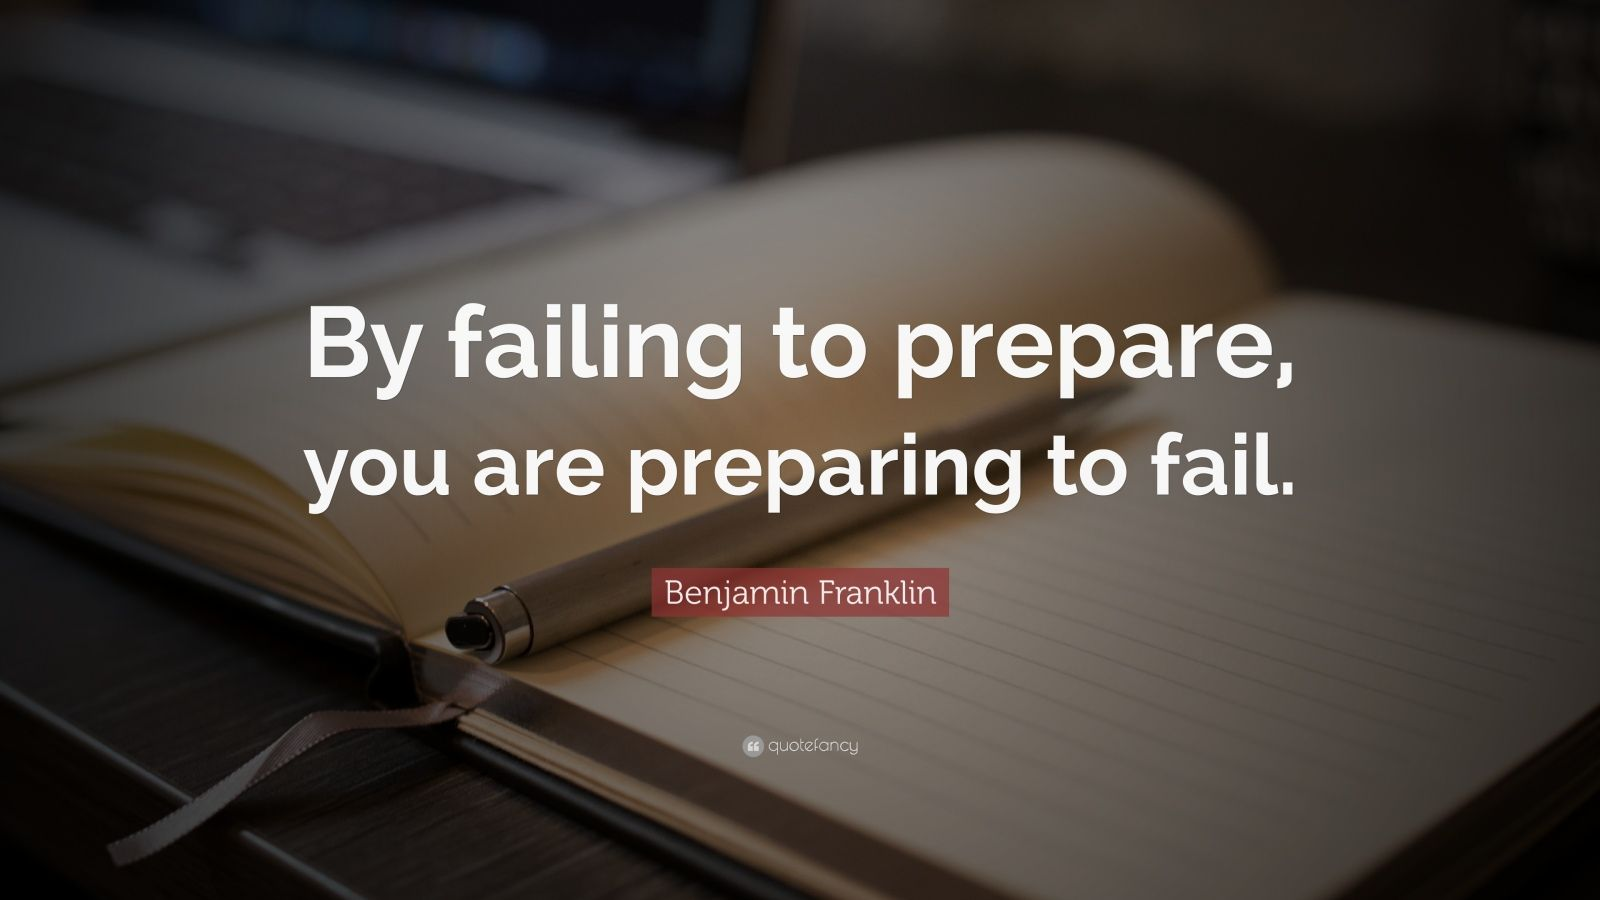 Fail Quotes Wallpaper Benjamin Franklin Quote By Failing To Prepare You Are